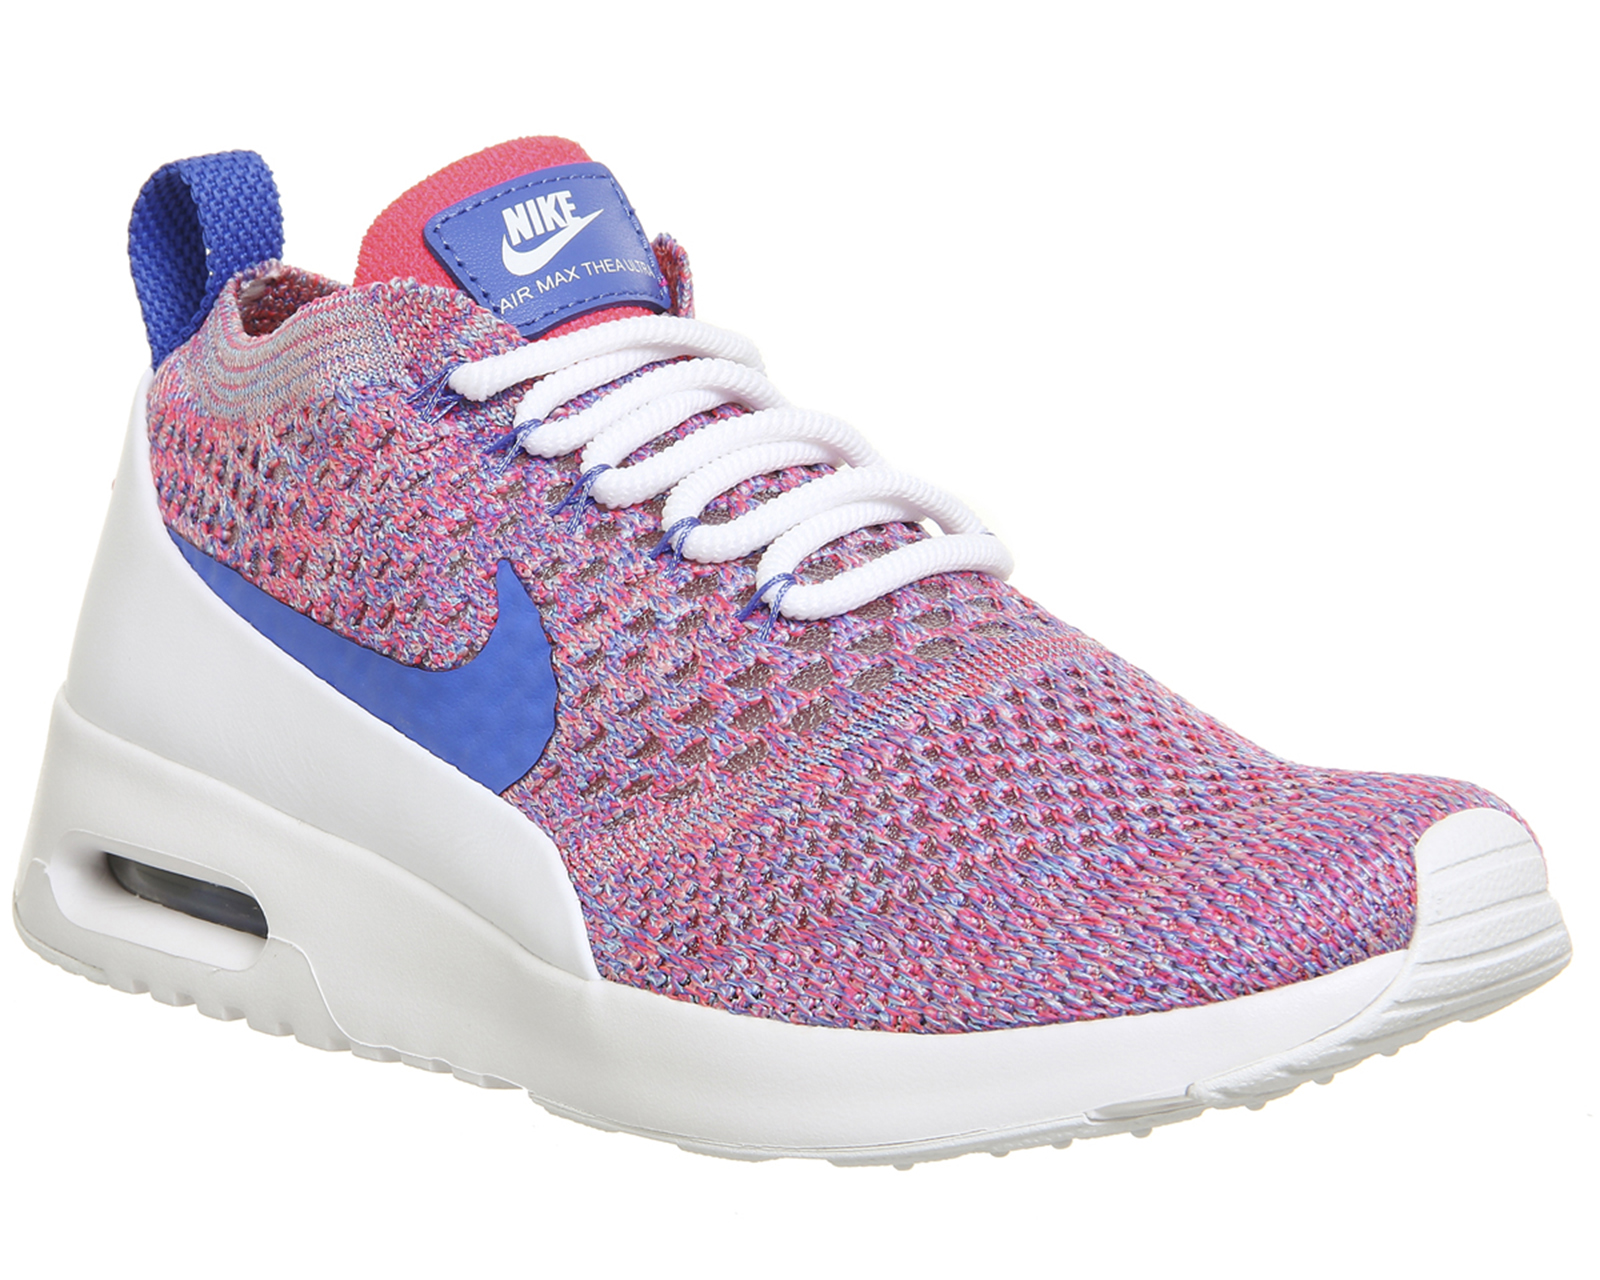 Details about Nike Air Max Thea Blue Pink White Running Gym Trainers Size 5 FREE RETURNS